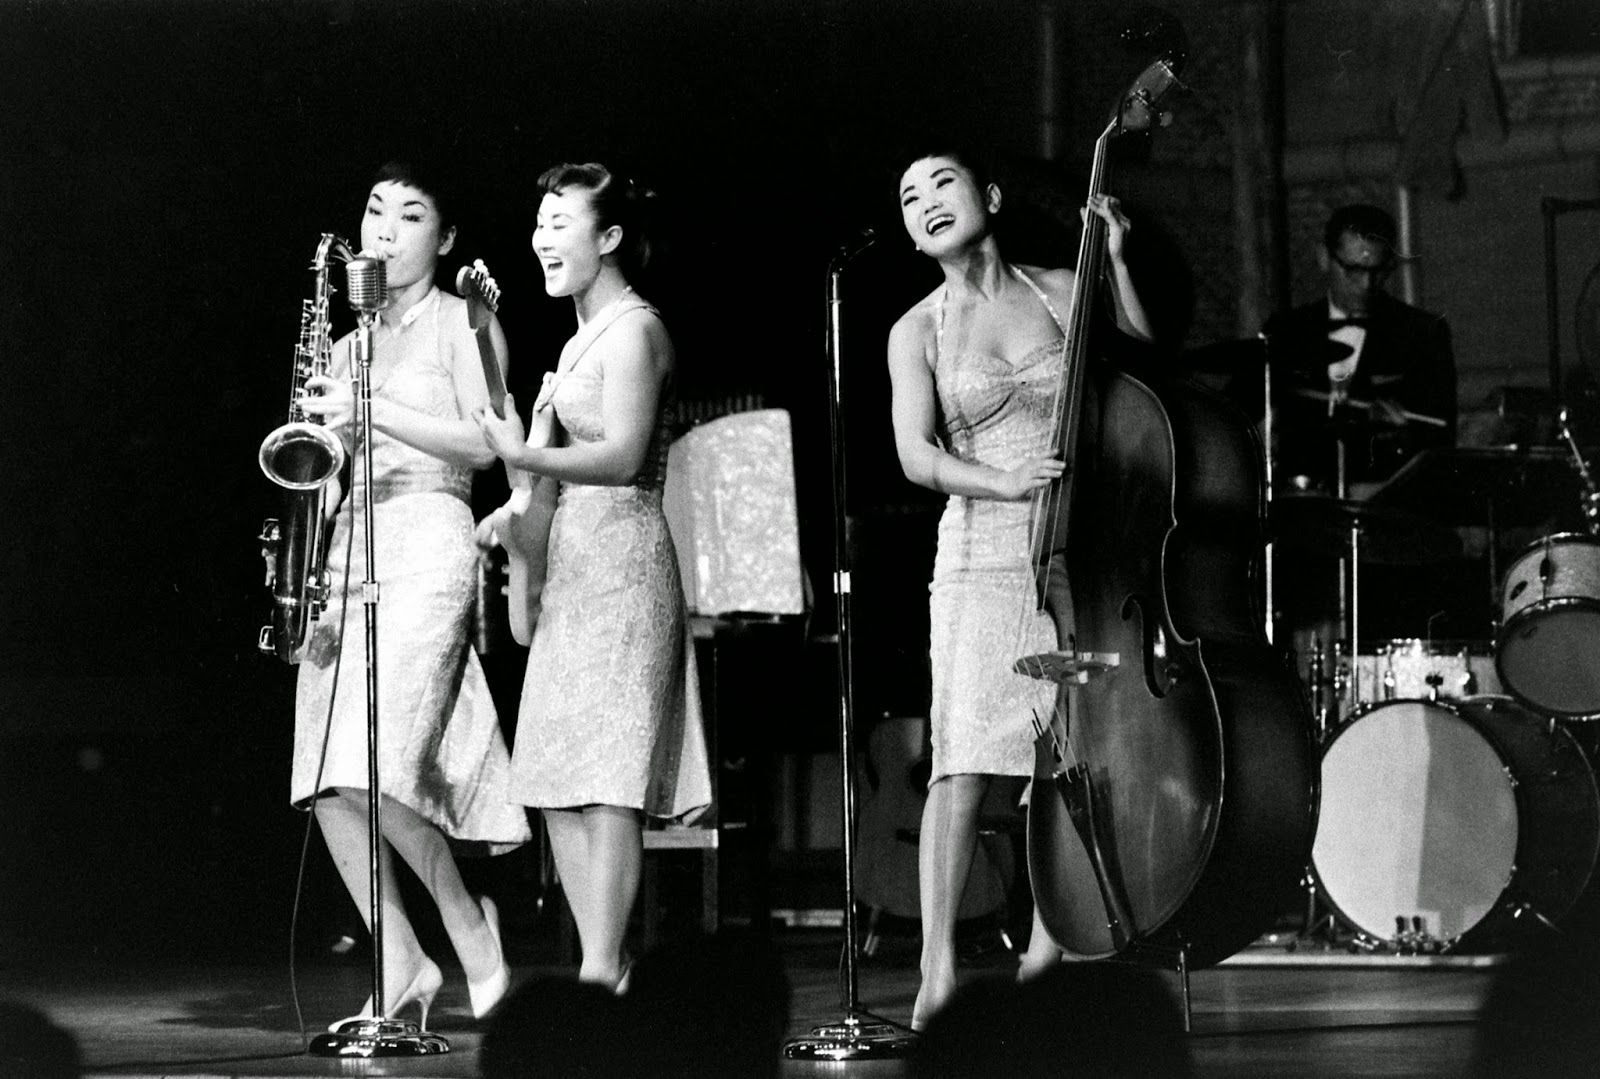 """The Kim Sisters was a South Korean female trio who made their career in the United States during the 1950s and 1960s. They were the two sisters Sue (Sook-ja)and Aija (Ai-ja) and a third member, cousin Mia (Minja) Kim. Sue and Aija were two of seven children of Kim Hae-song, a popular music conductor, and Lee Nan-young, one of Korea's most famous singers before the Korean War, perhaps best known for """"the Tears of Mokpo."""" Mia's father was Lee Bong-ryong, a musician as well."""